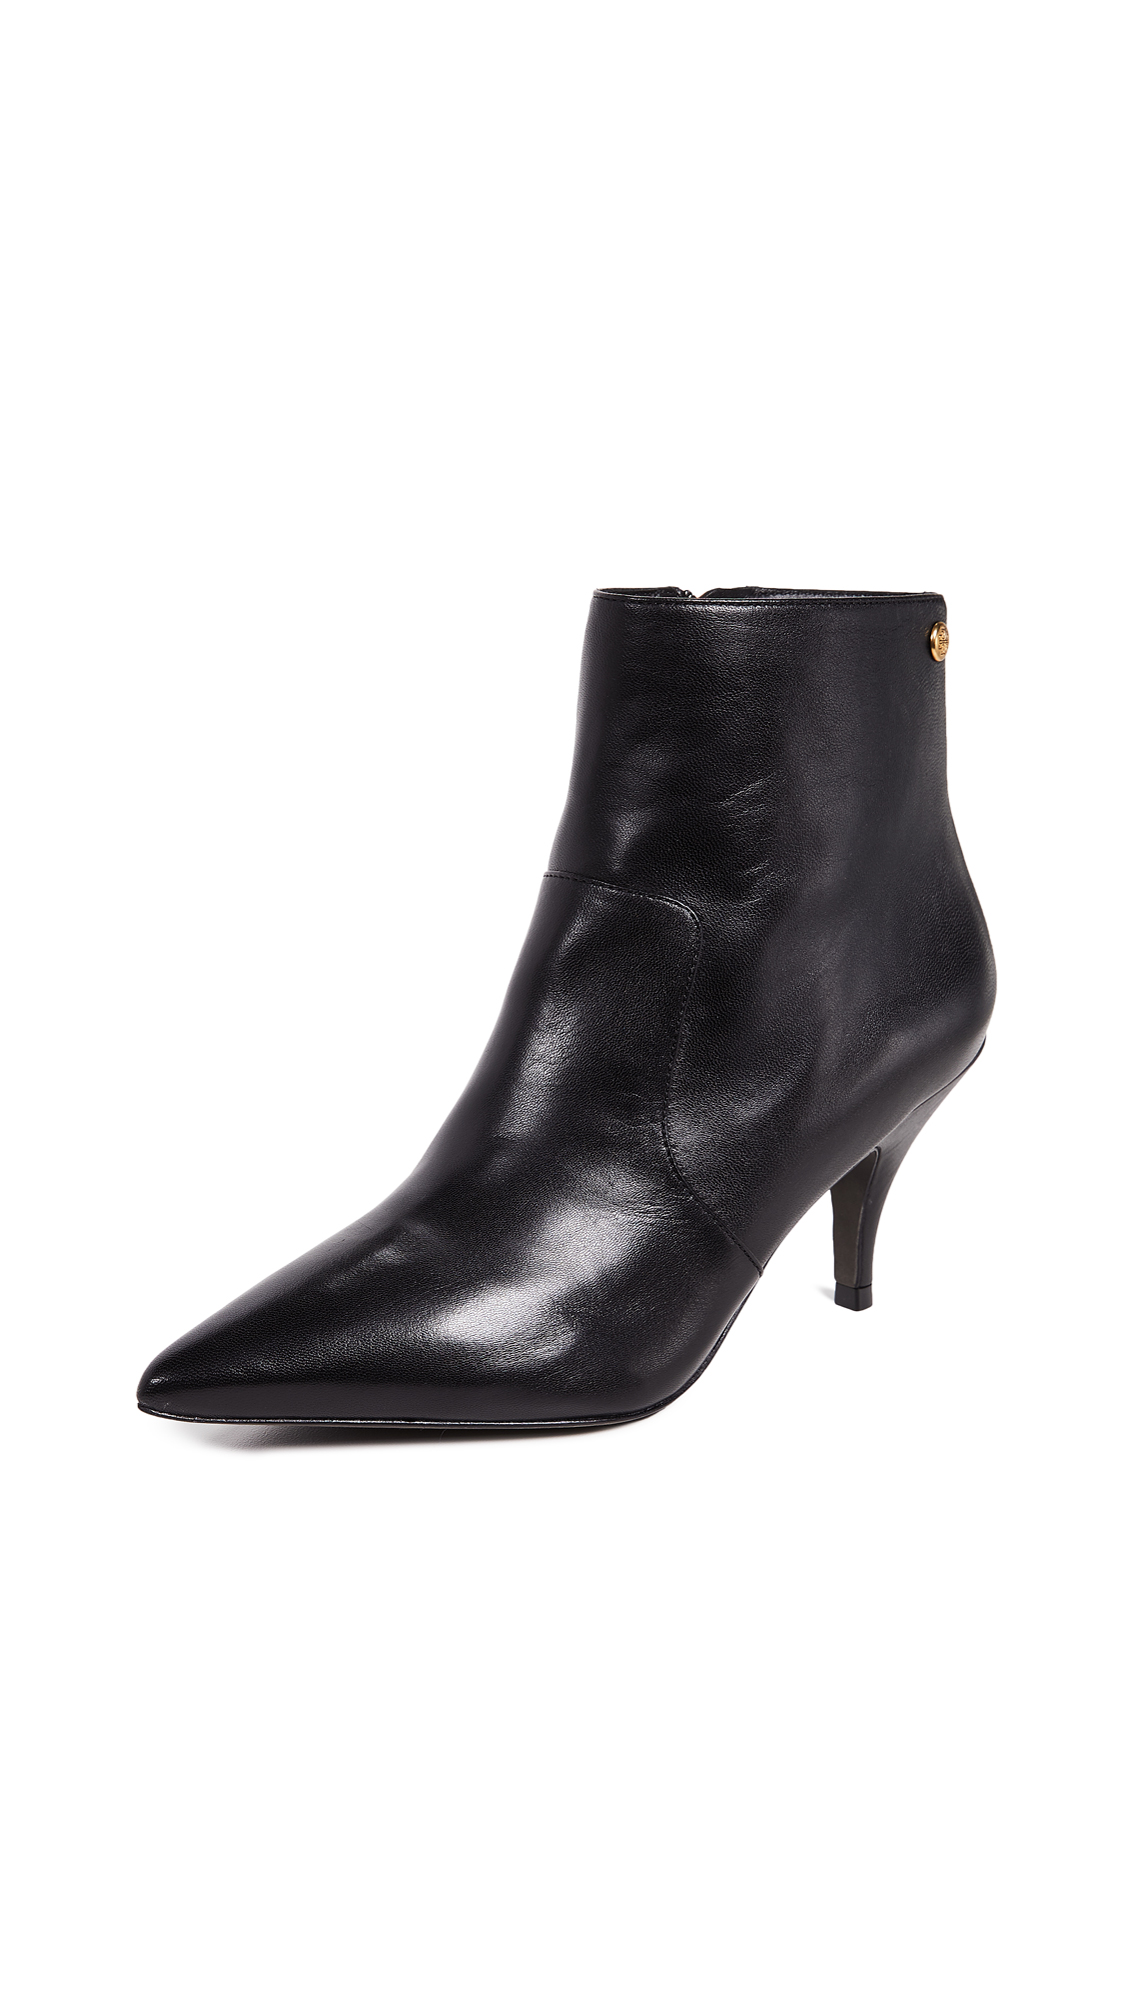 Tory Burch Georgina Booties